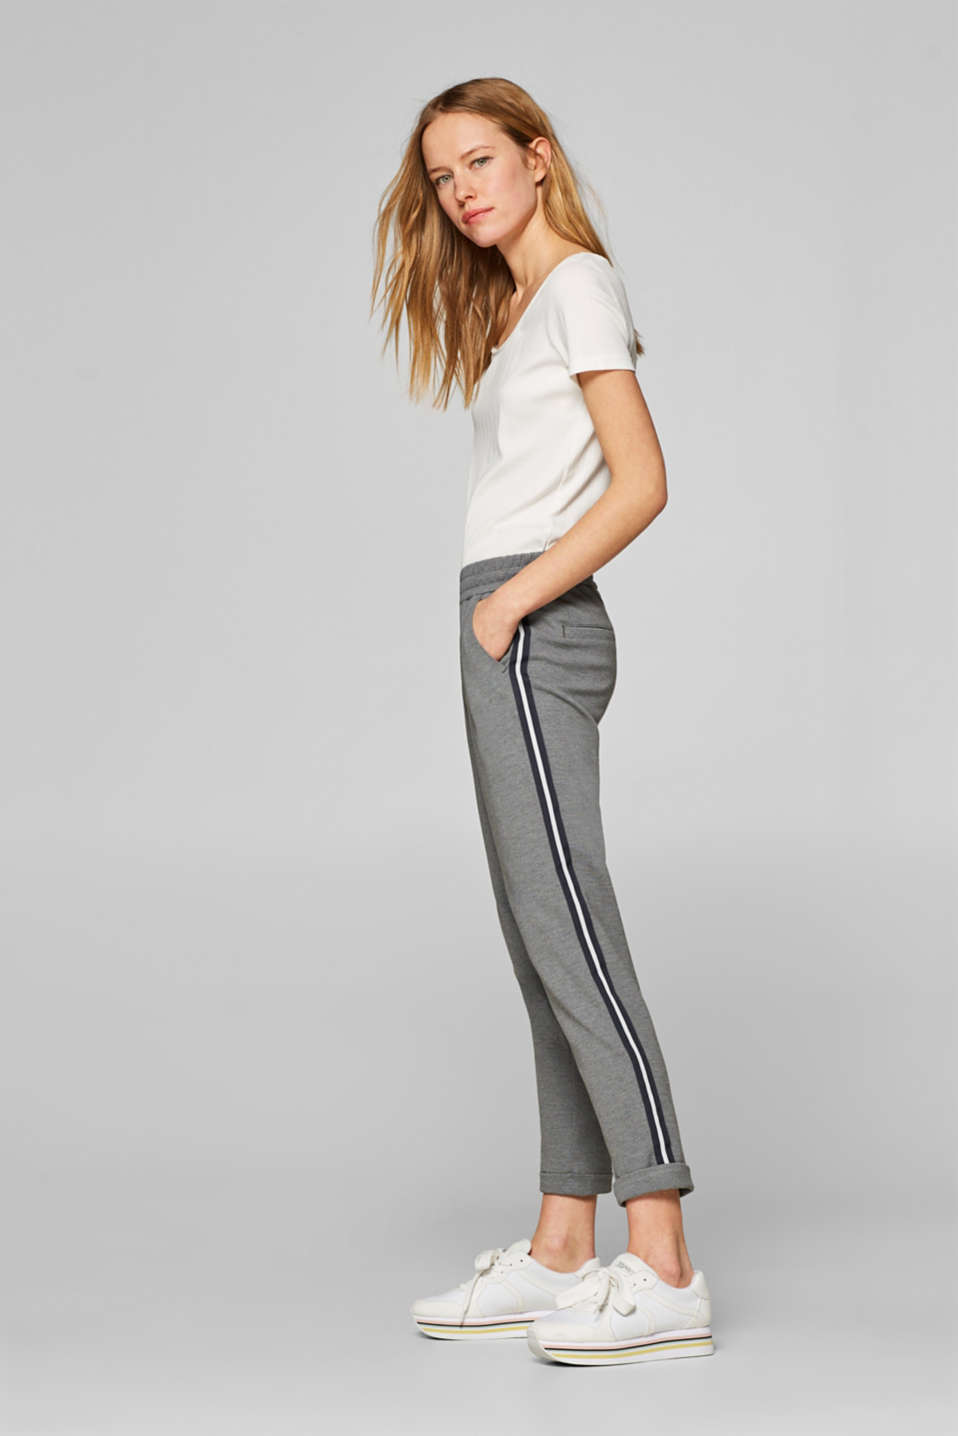 edc - Sweatshirt trousers with side stripes